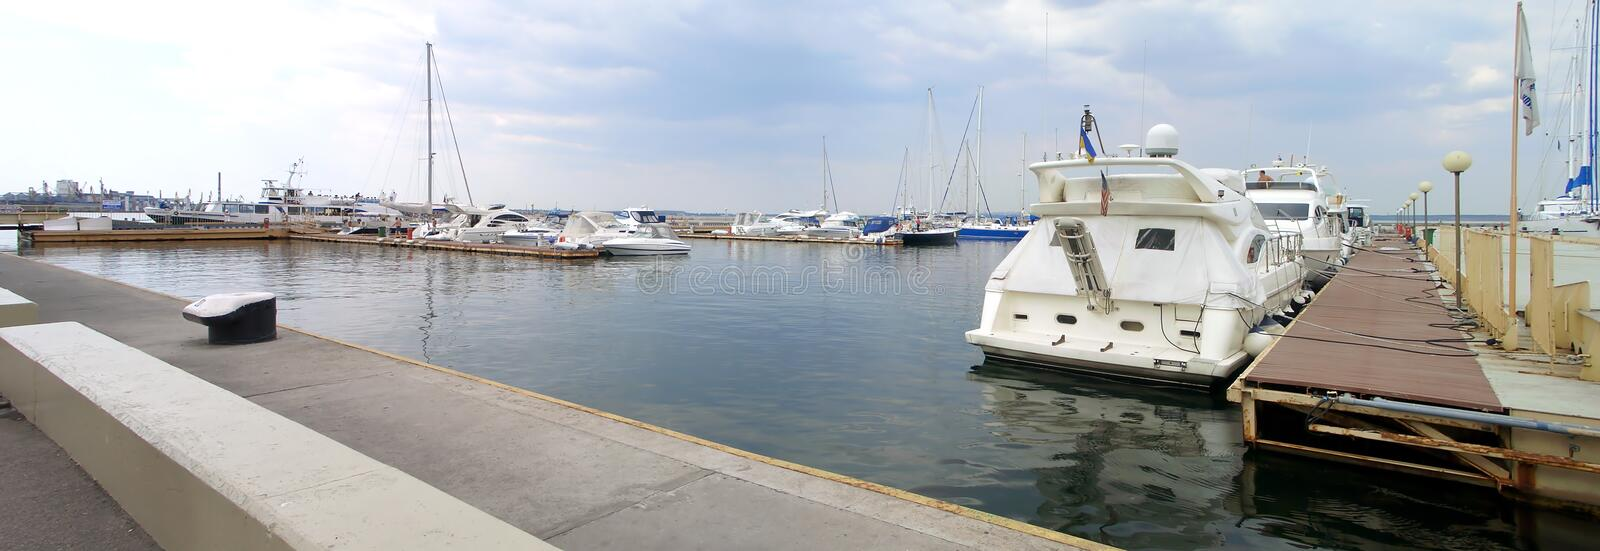 Yacht-club royalty free stock photography